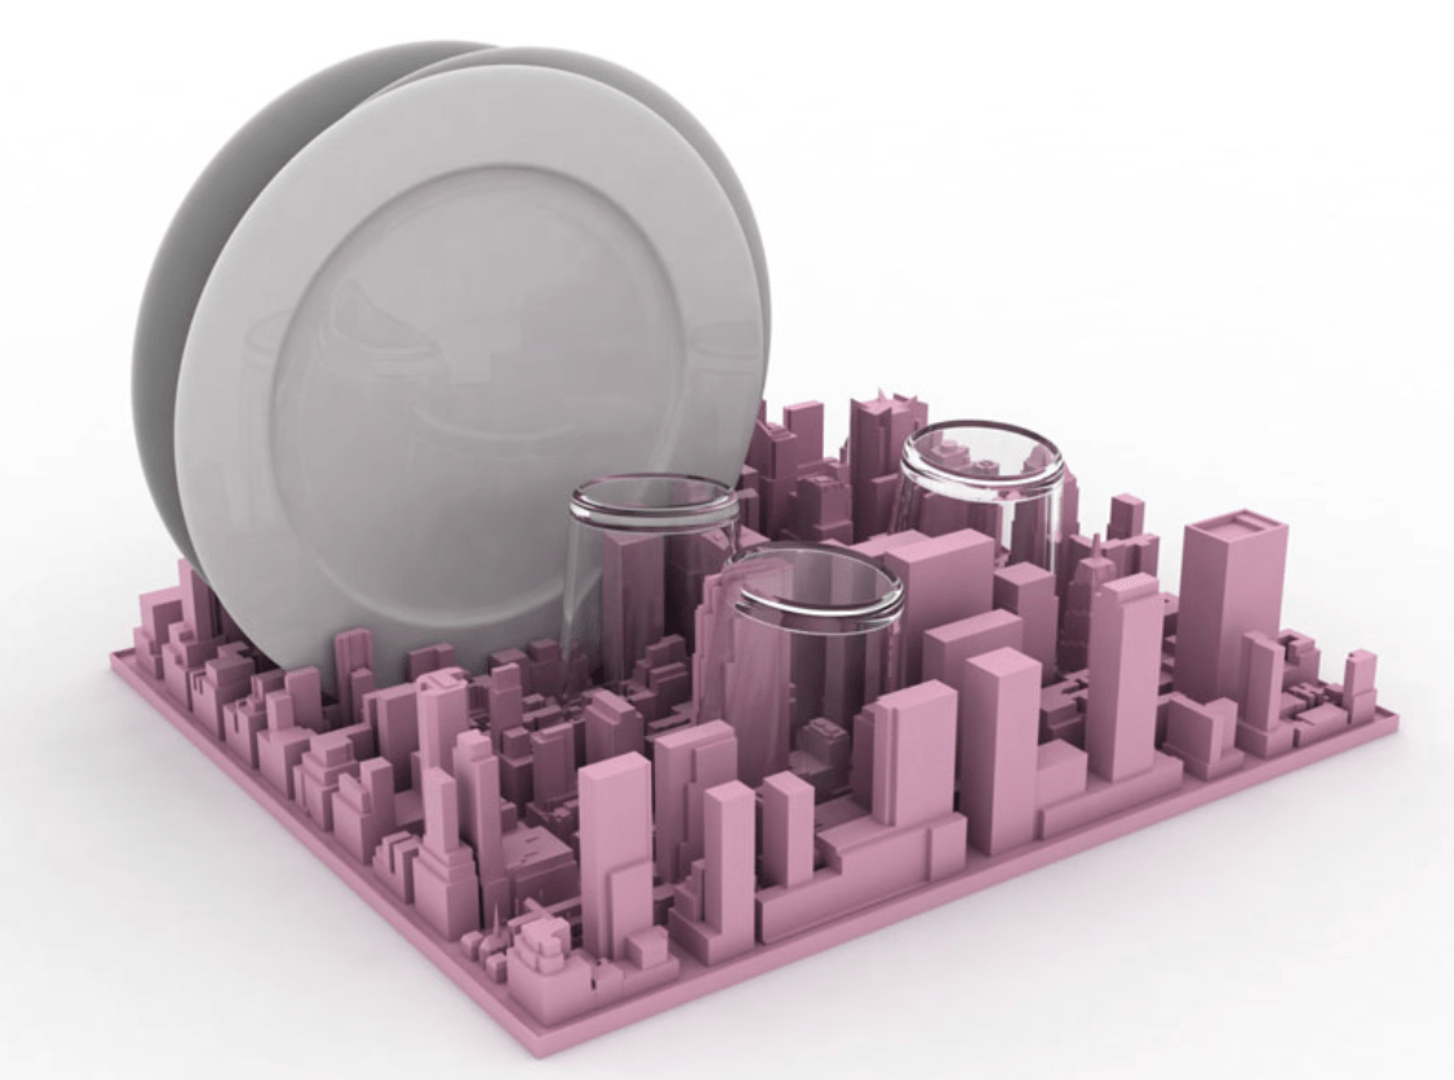 INCEPTION LO SCOLAPIATTI IN SILICONE DI SELETTI CELEBRA MANHATTAN  Arredare con stile